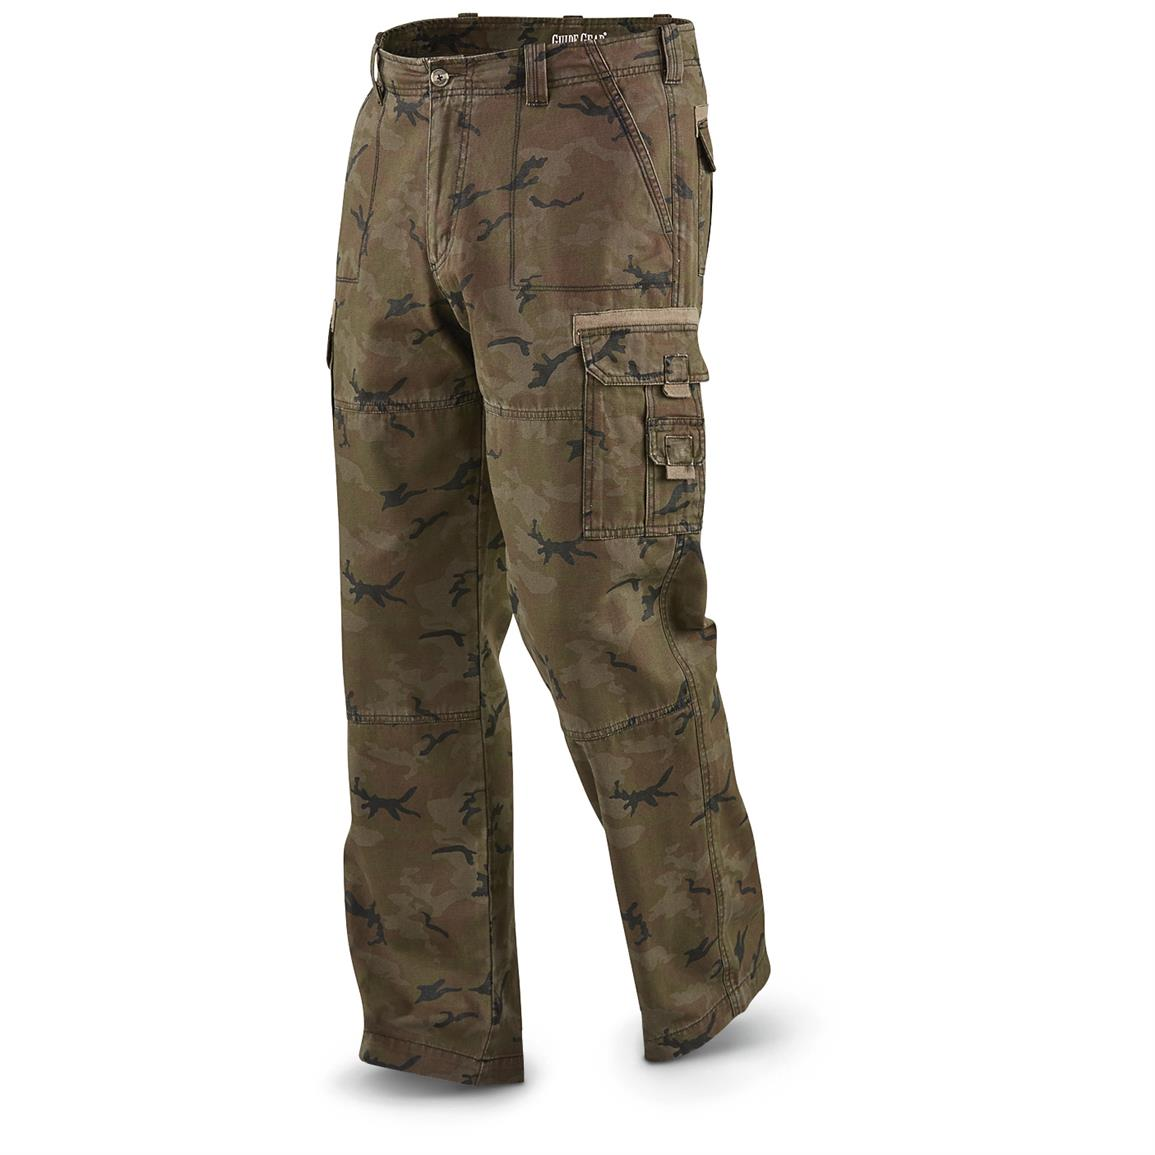 Guide Gear Men's Cargo Pants, Woodland Camo